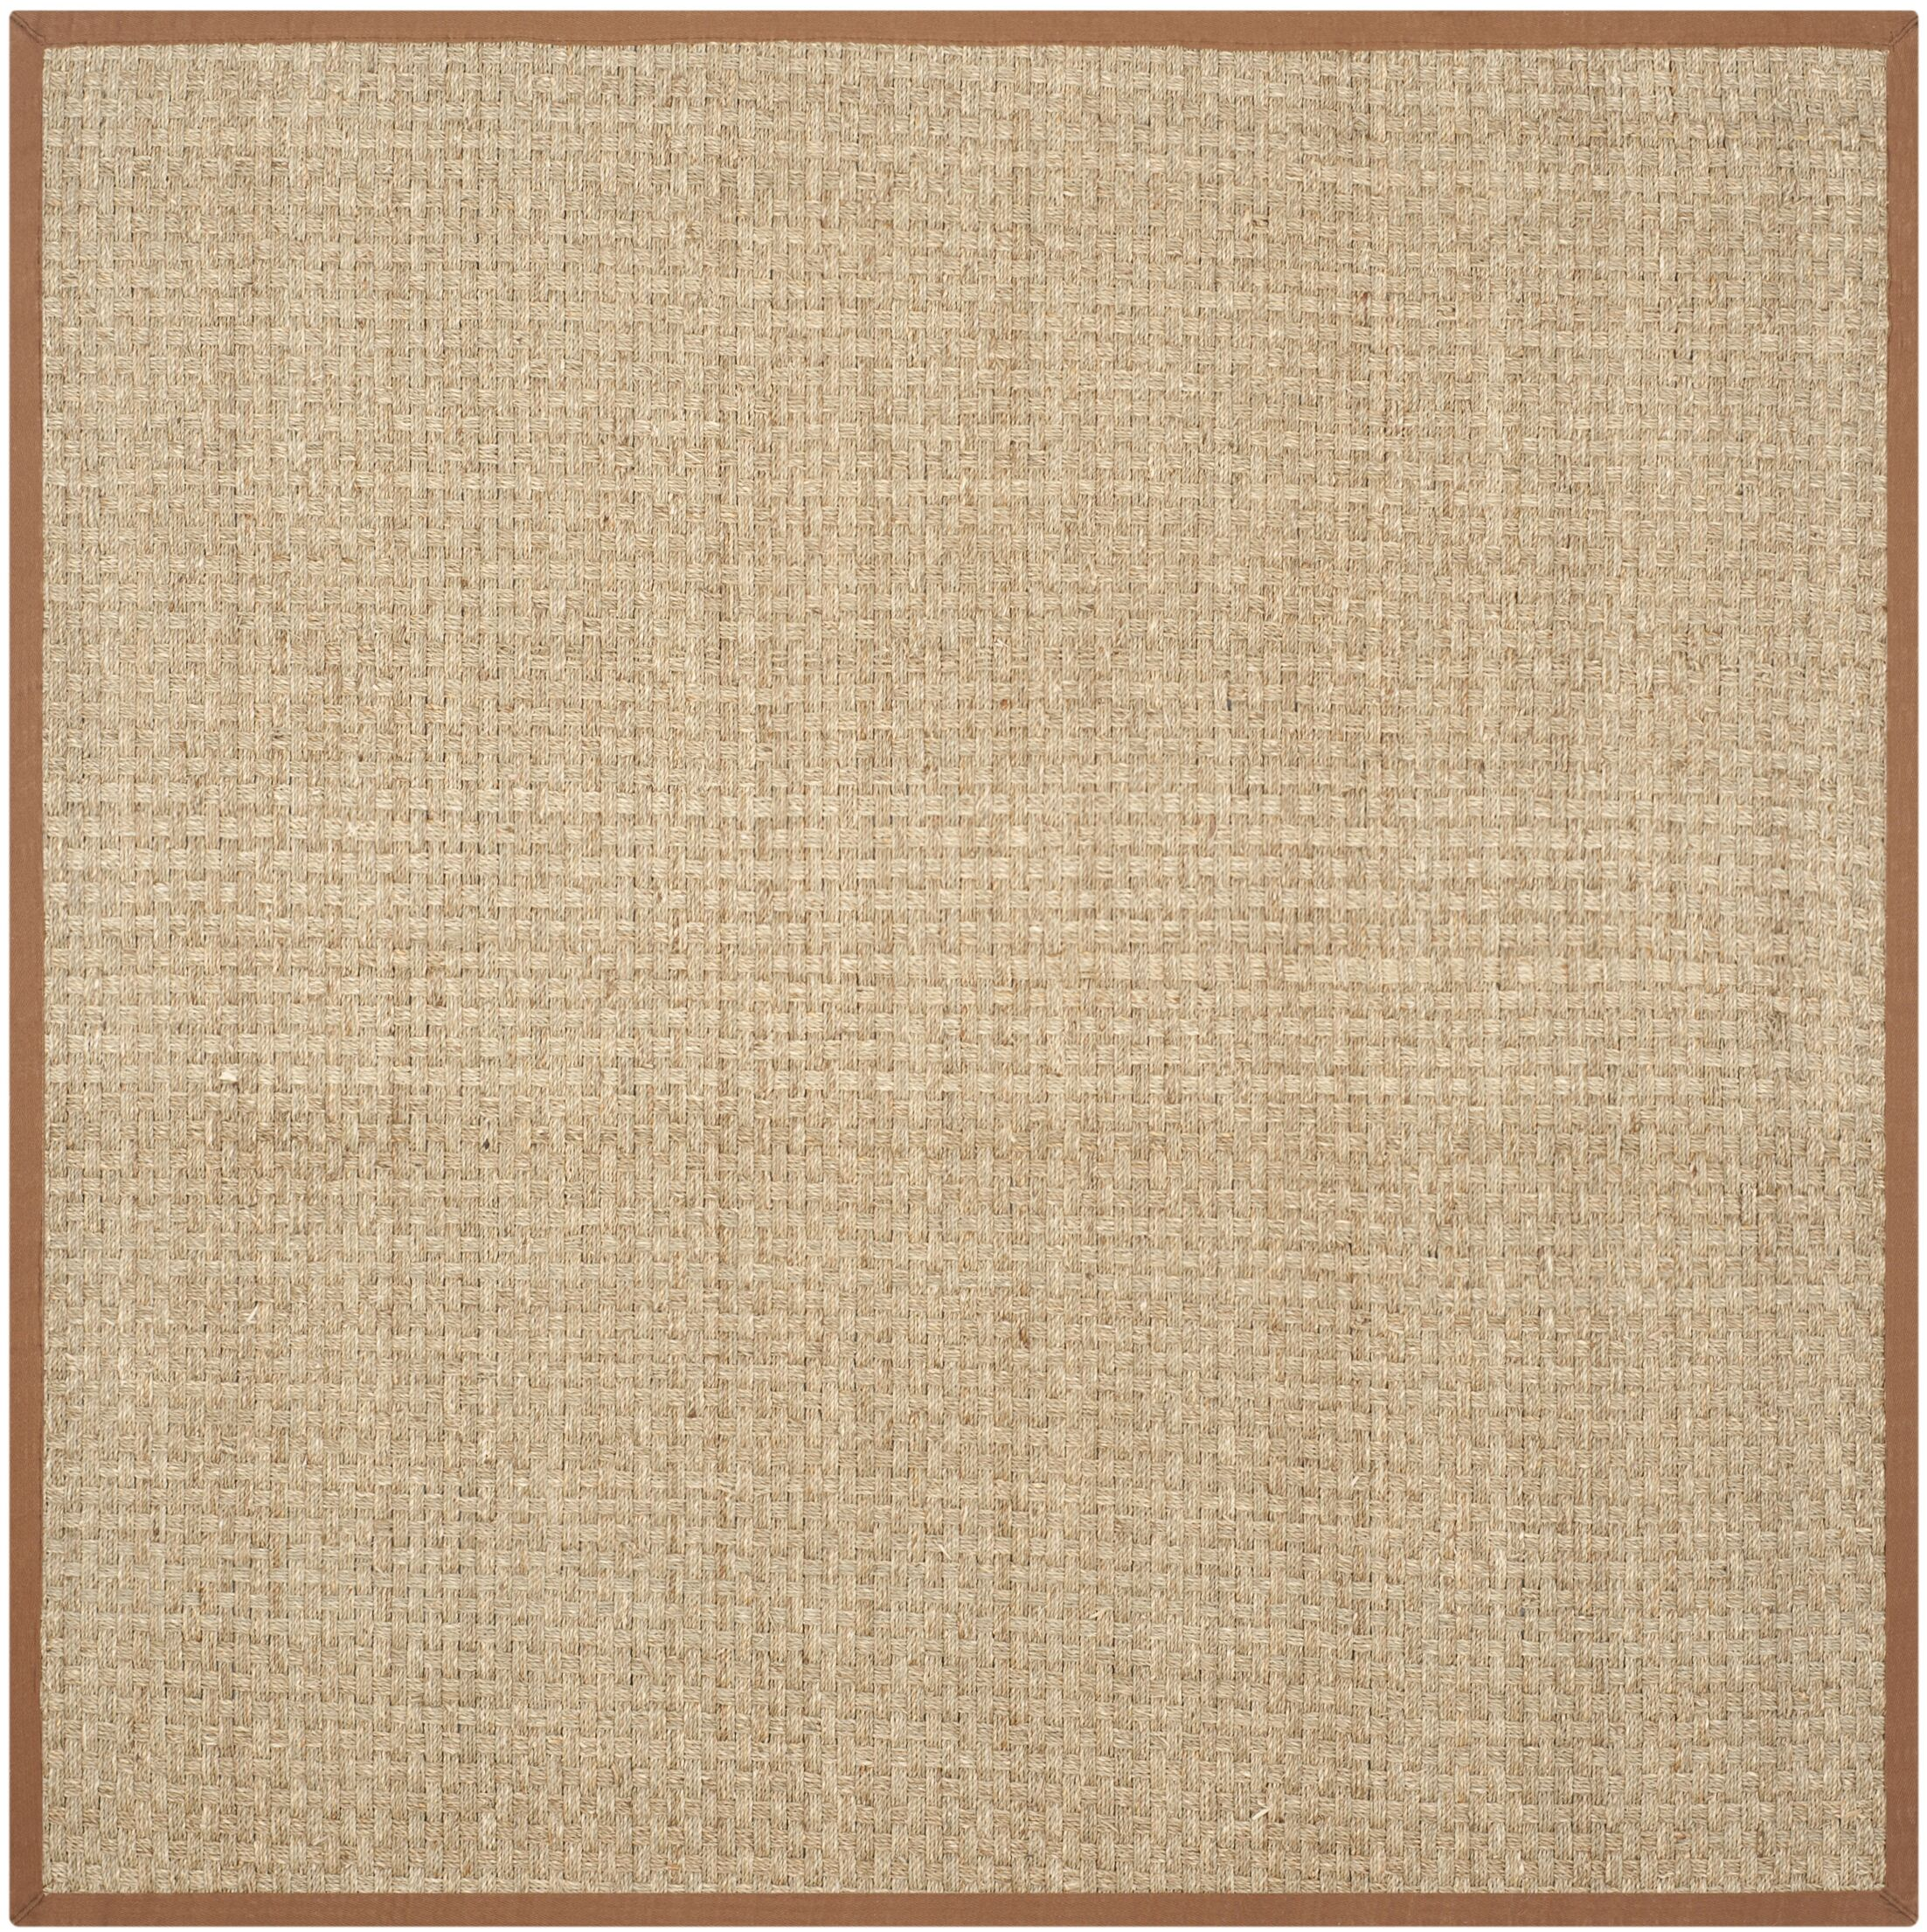 Dufour Hand-Woven Natural/Brown Area Rug Rug Size: Square 10'